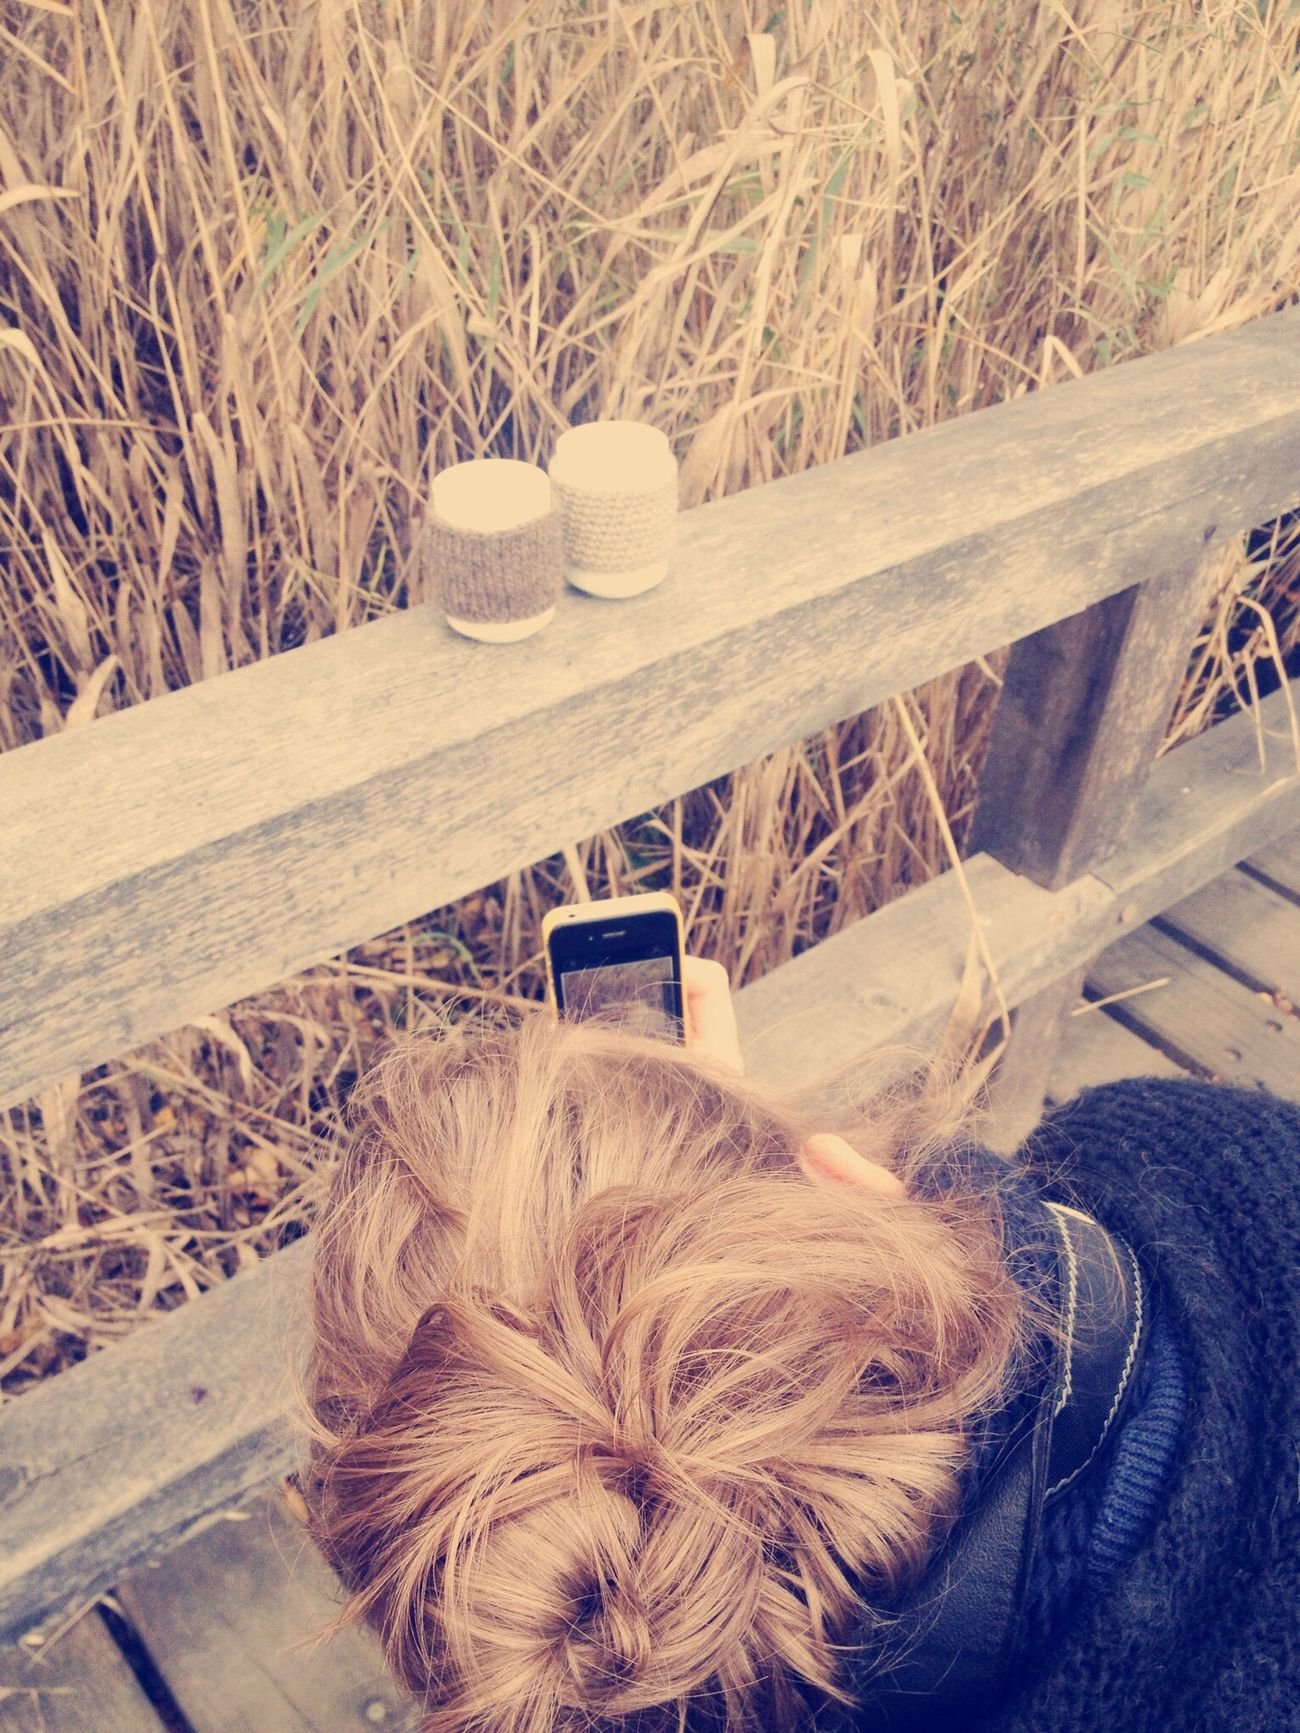 Taking Photos Of People Taking Photos